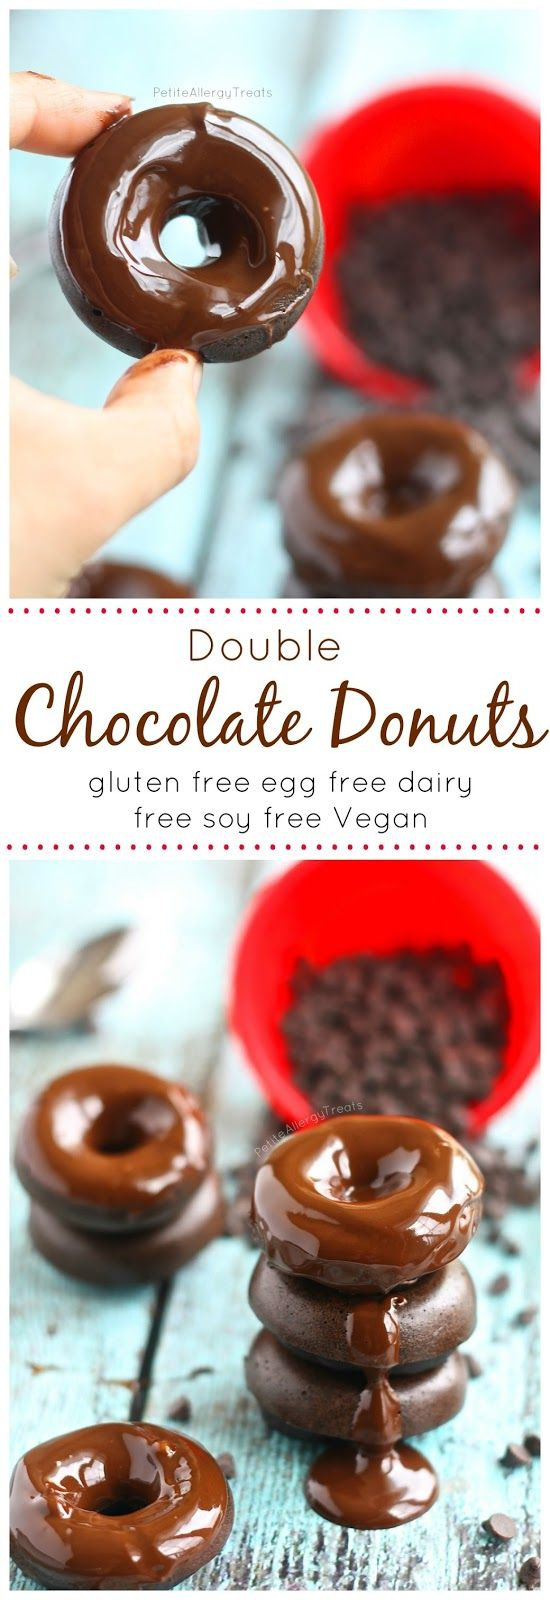 Chocolate Donuts (gluten free egg free dairy free Vegan)- Decadent chocolate drenched donuts that ROCK the food allergy world!